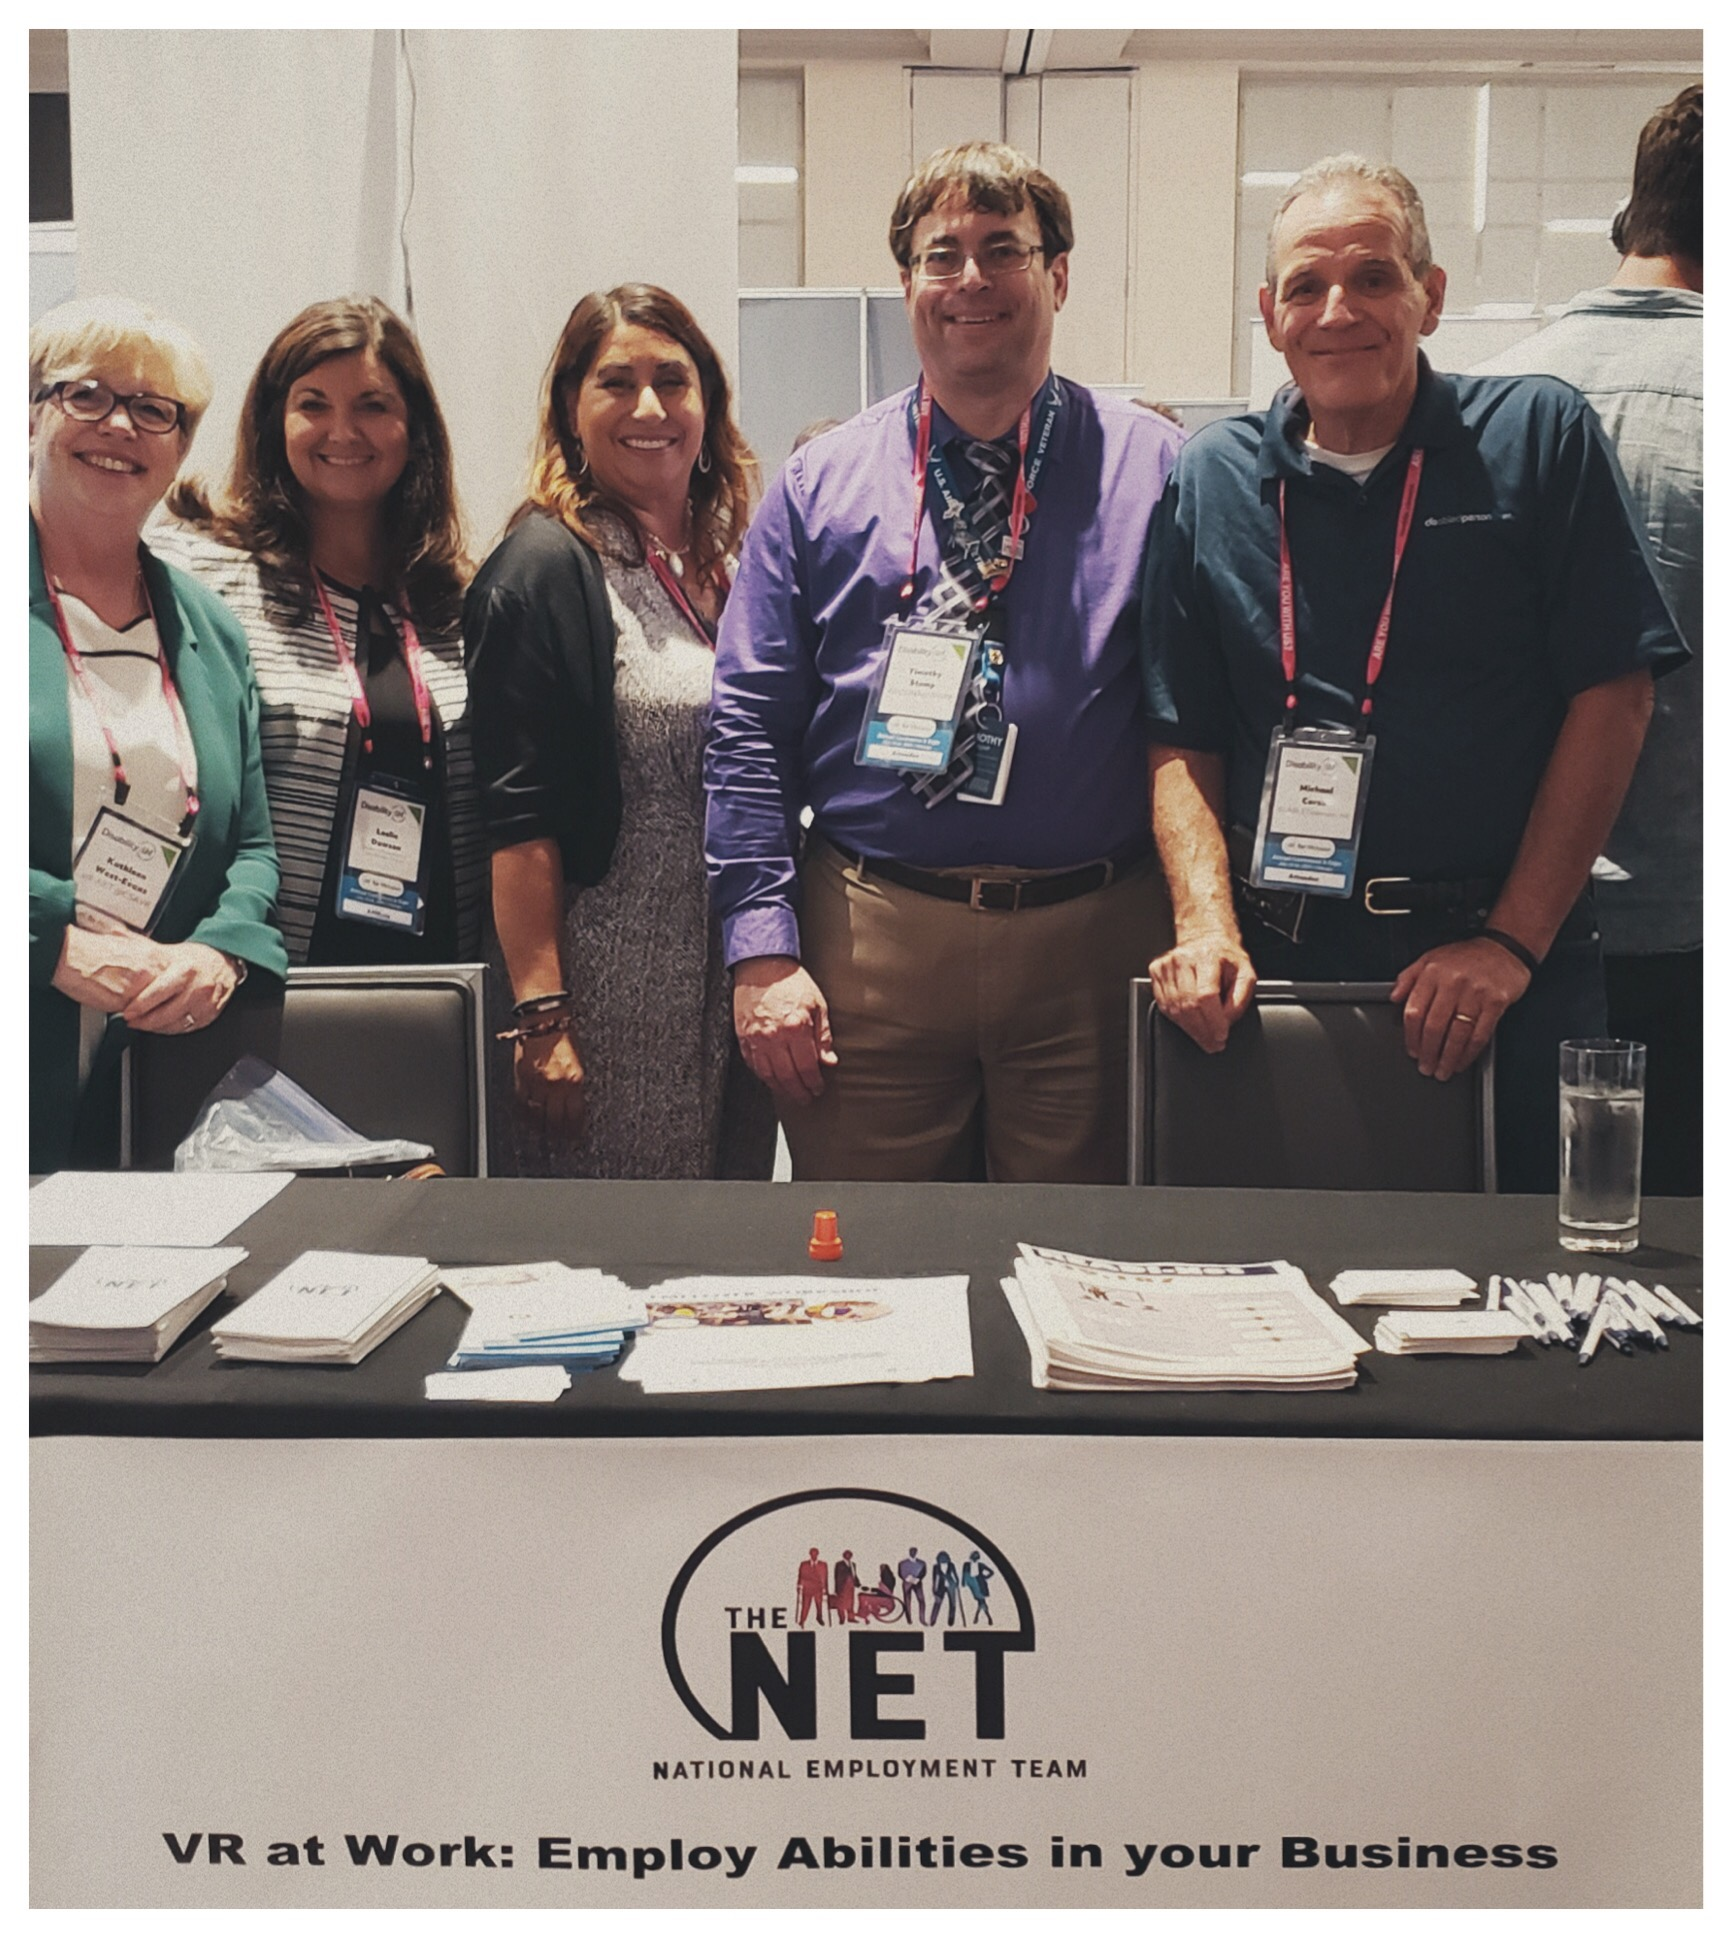 NET booth at expo